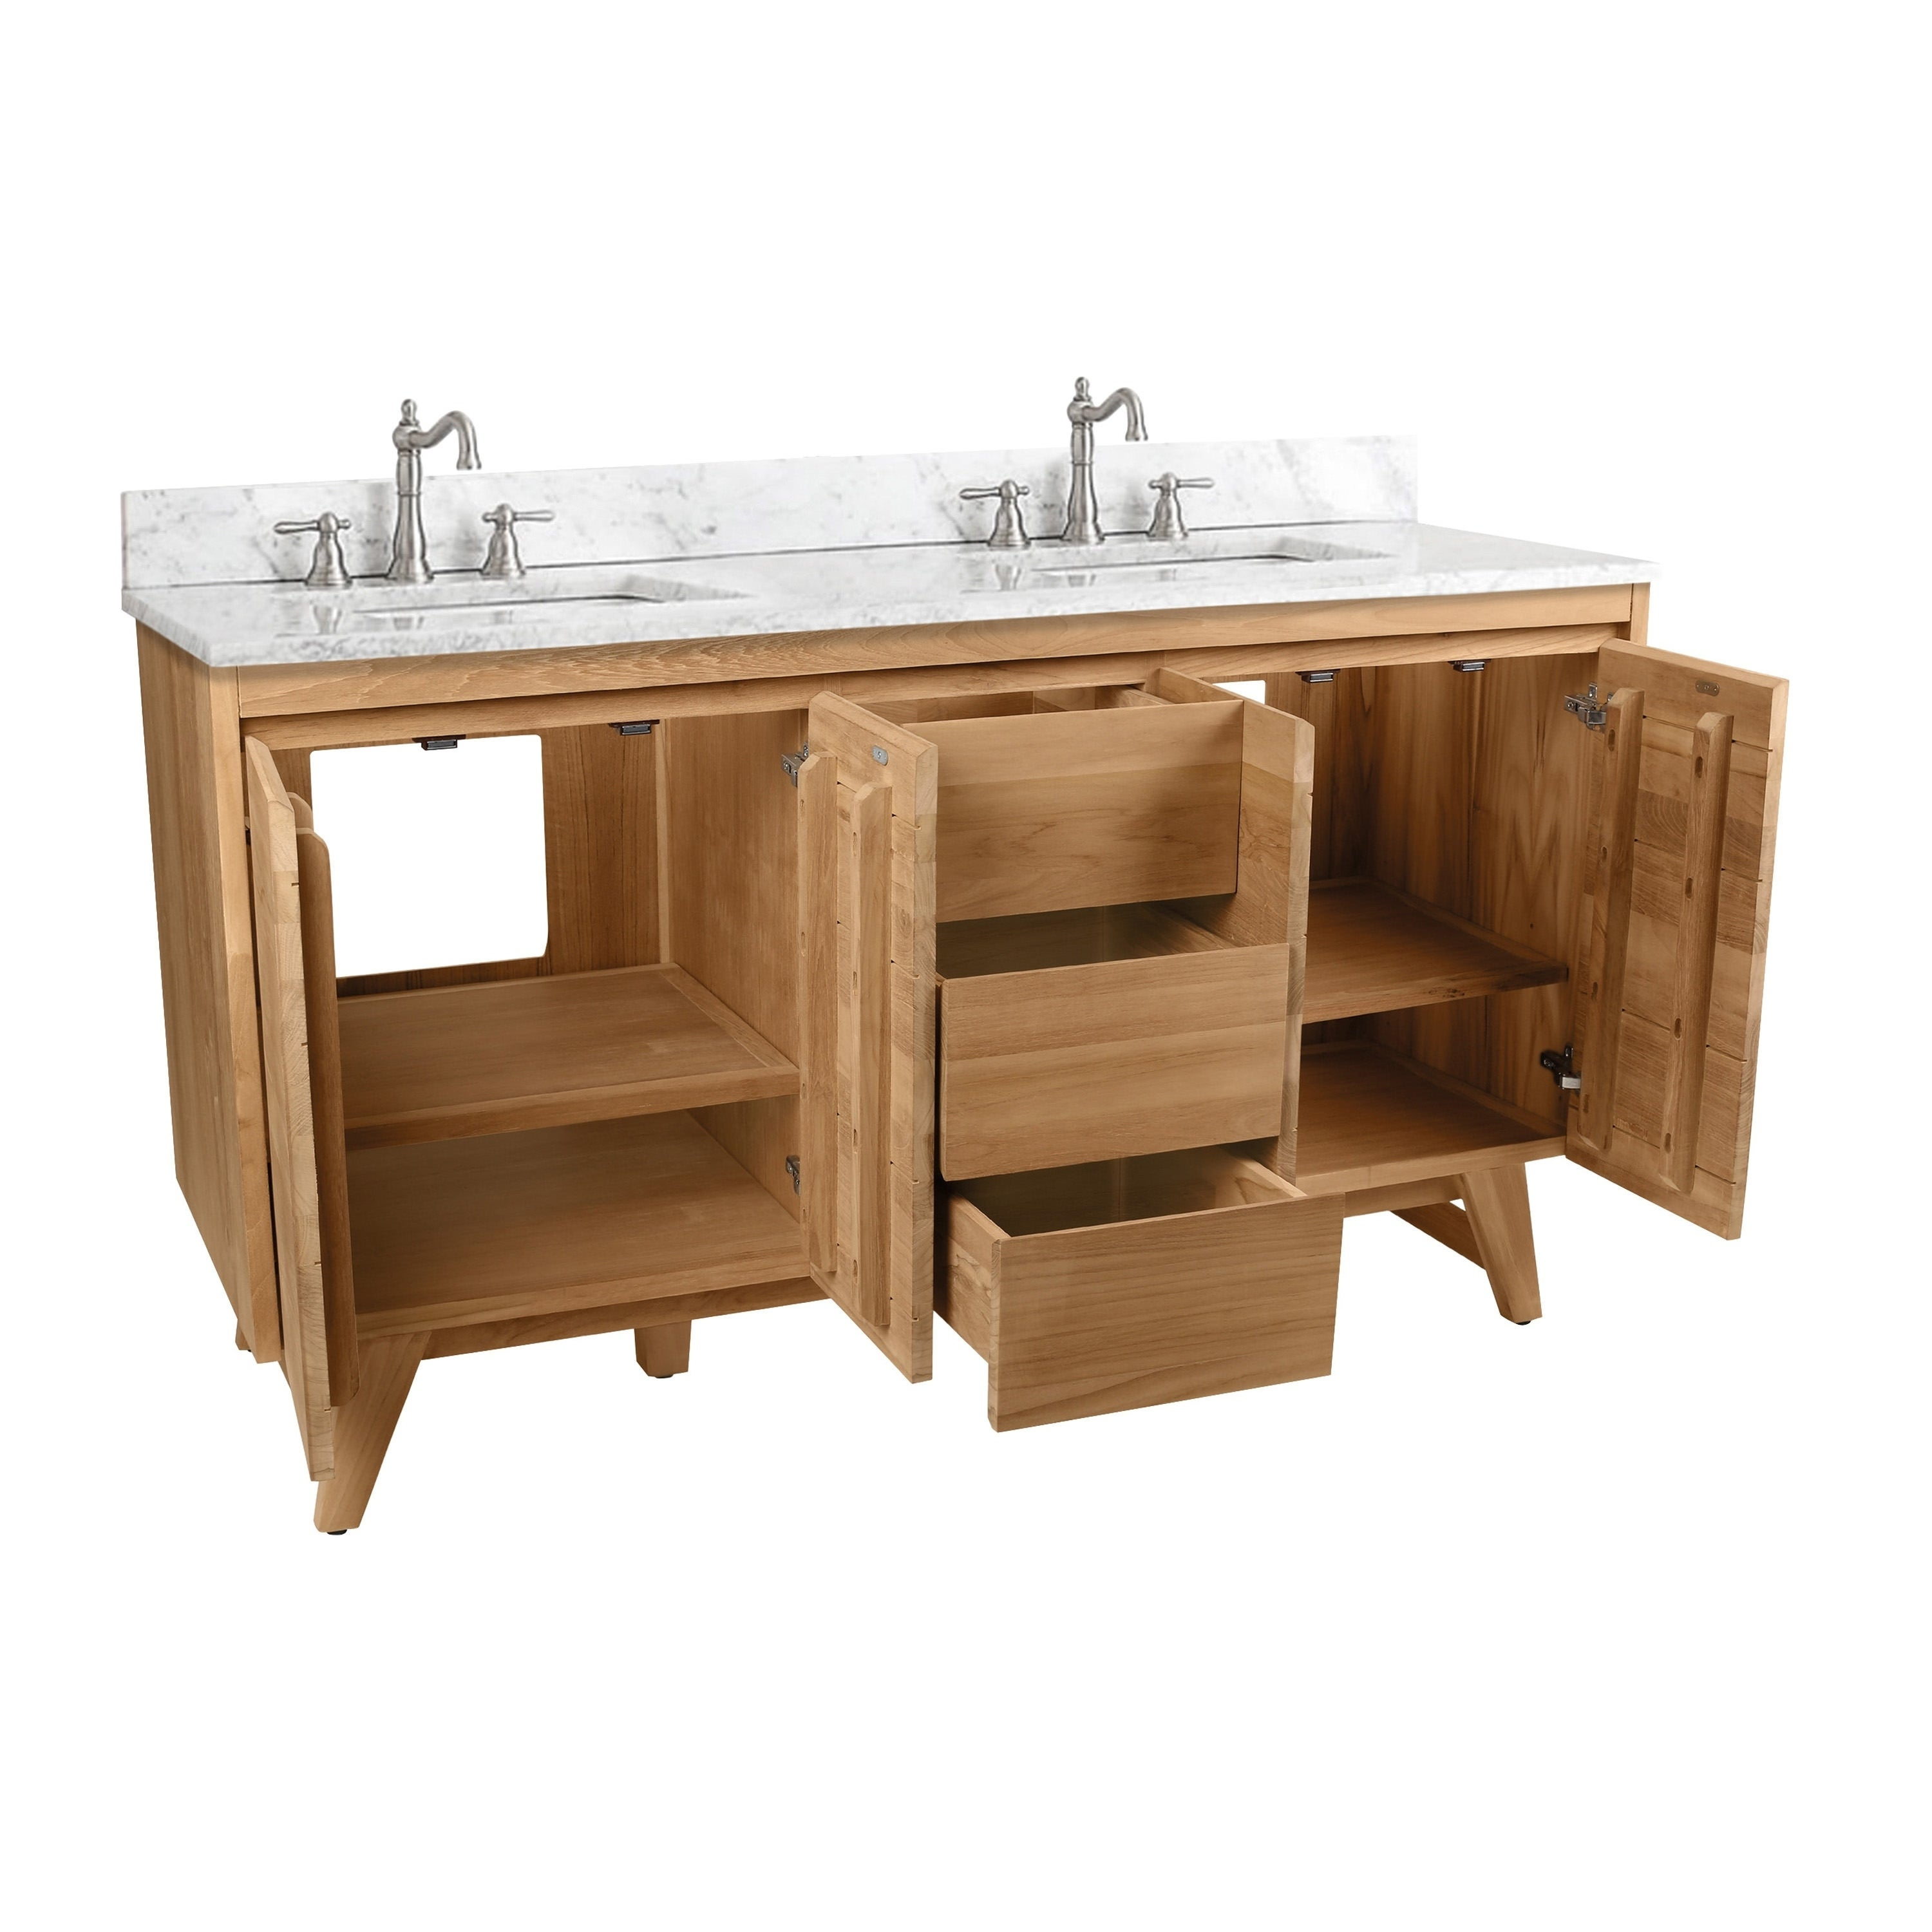 Avanity Coventry 61 In Vanity Combo With Carrera White Marble Top Overstock 21833675